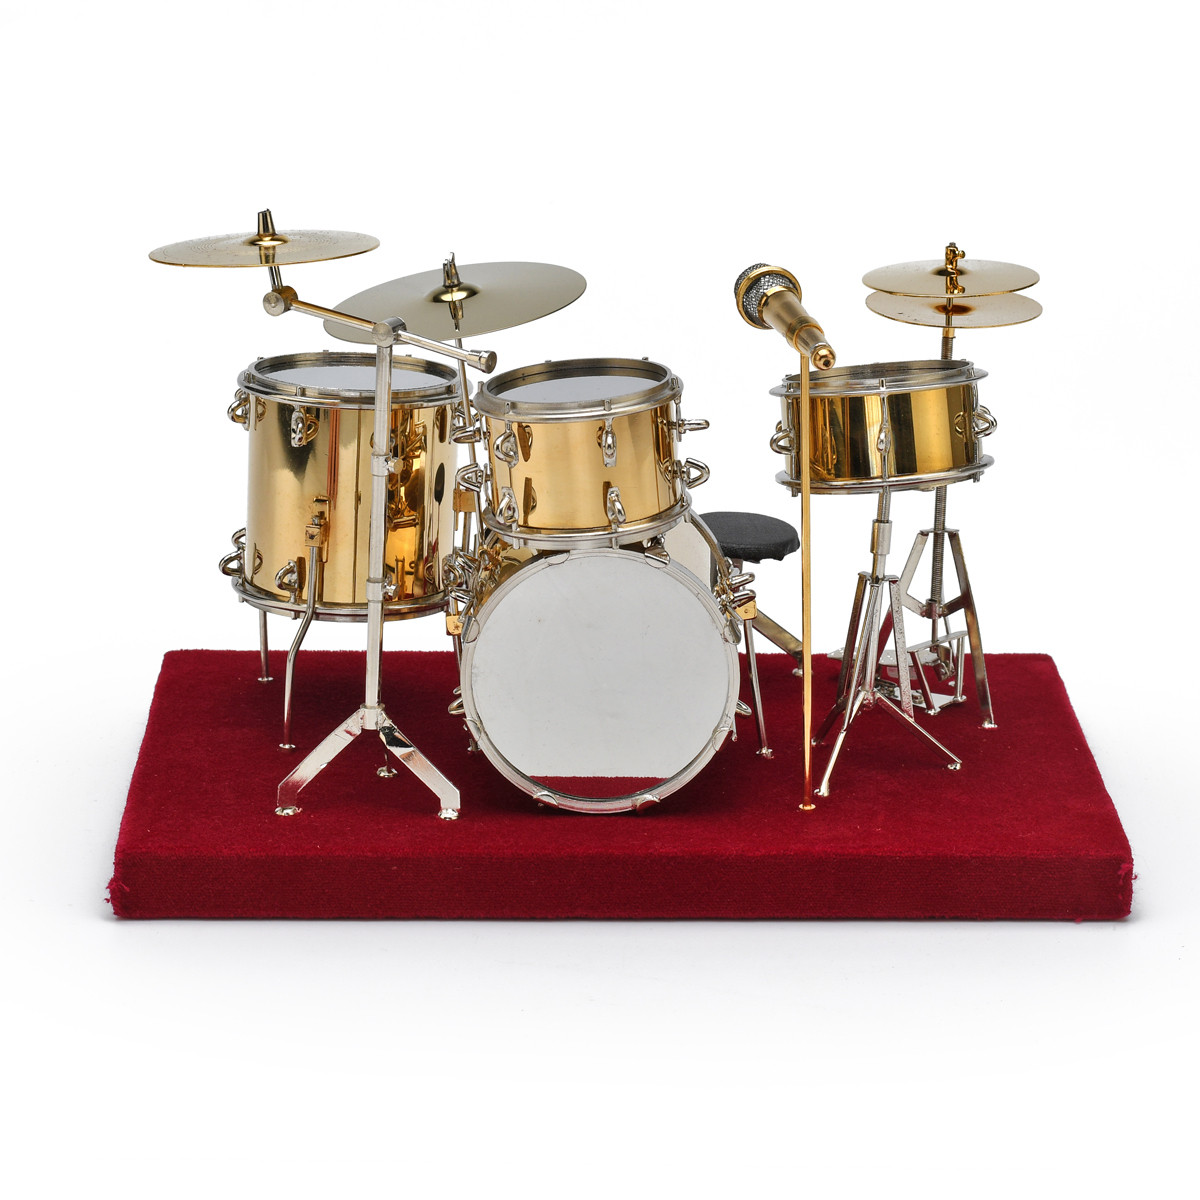 Incredible Miniature Replica of Complete Gold Drum Set with Case